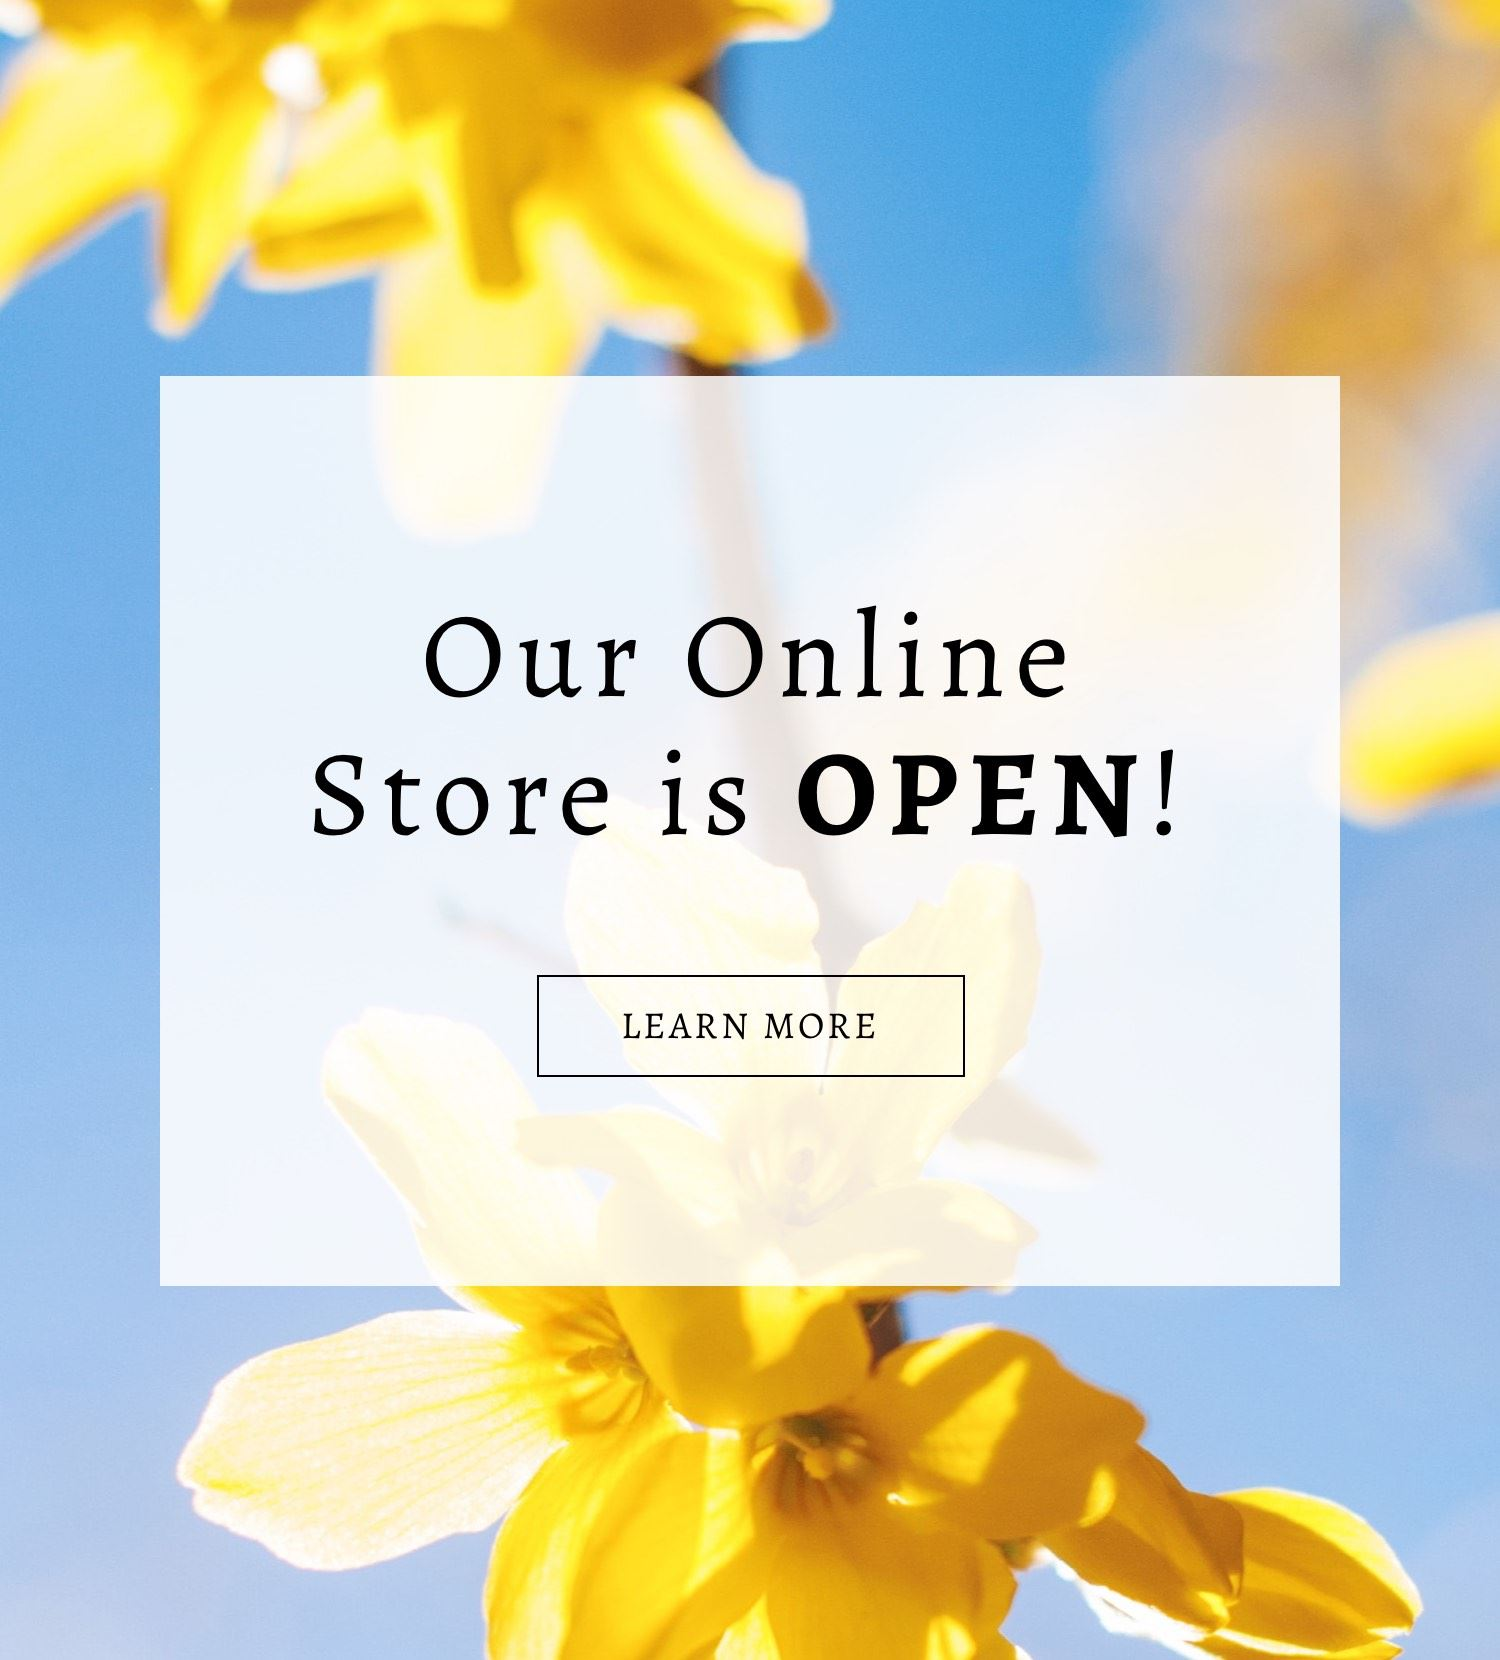 Now Open banner for Cecile Boutique with yellow flower background shown on mobile device